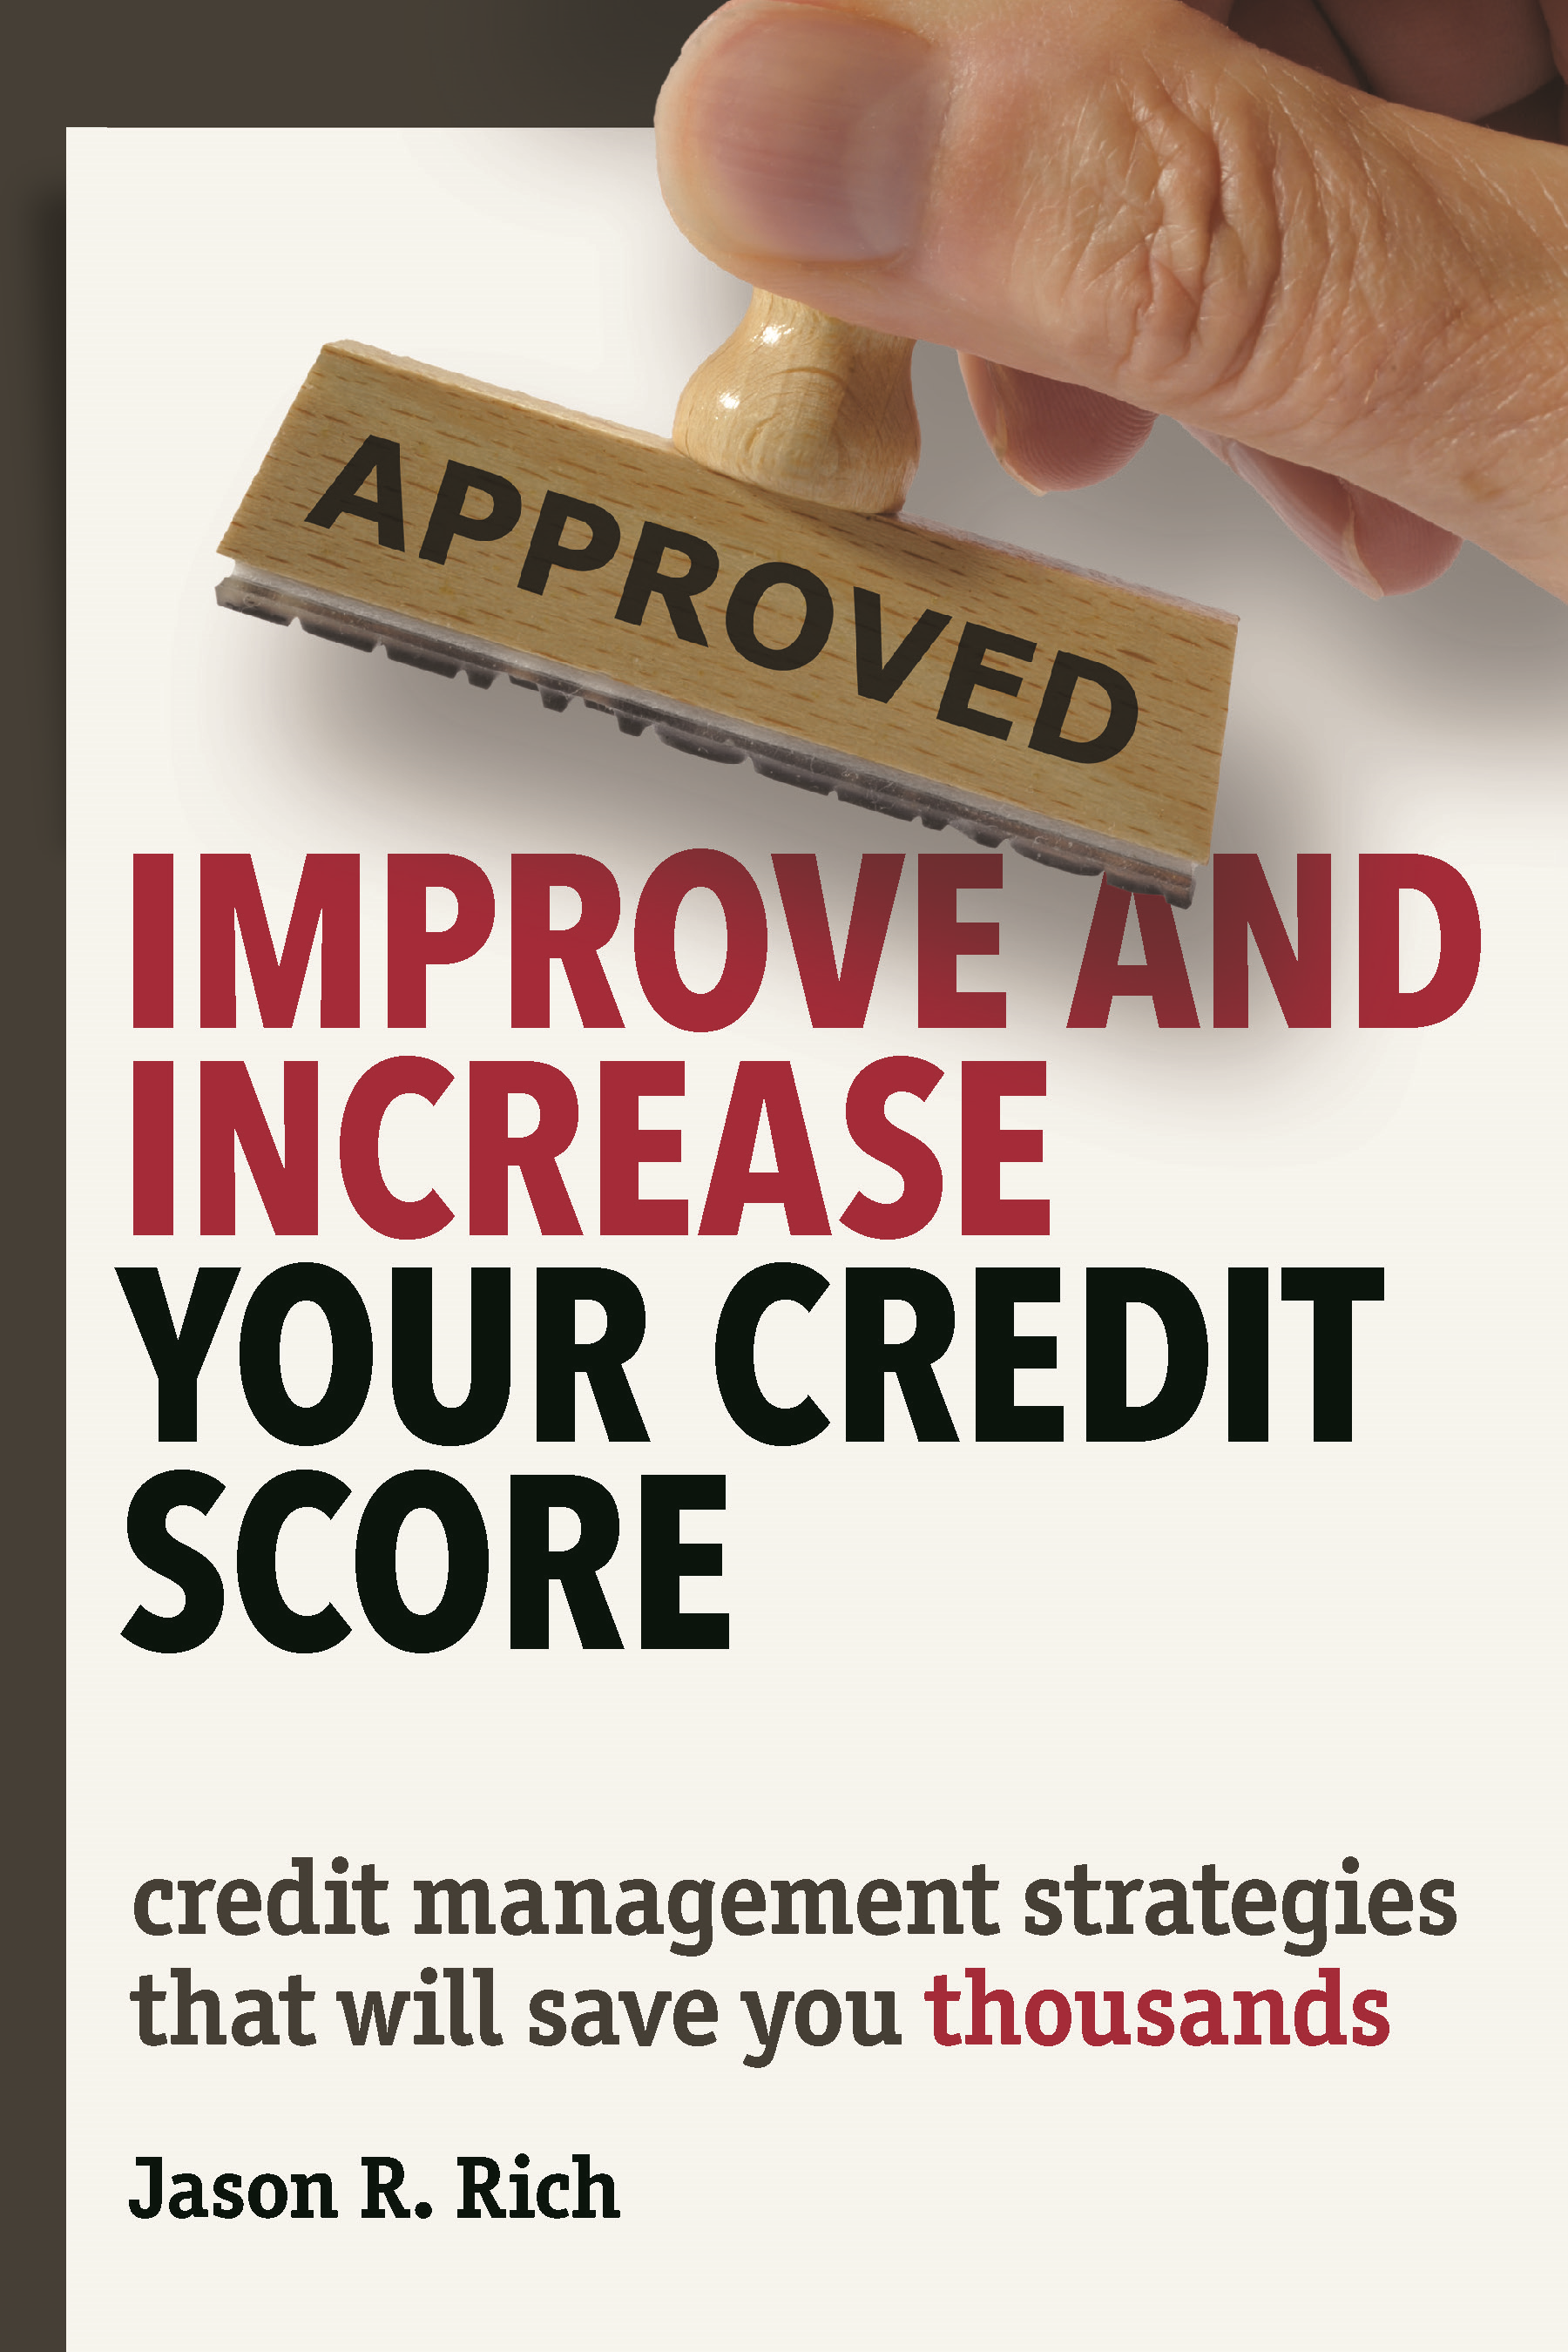 Improve and Increase Your Credit Score By: Jason R. Rich